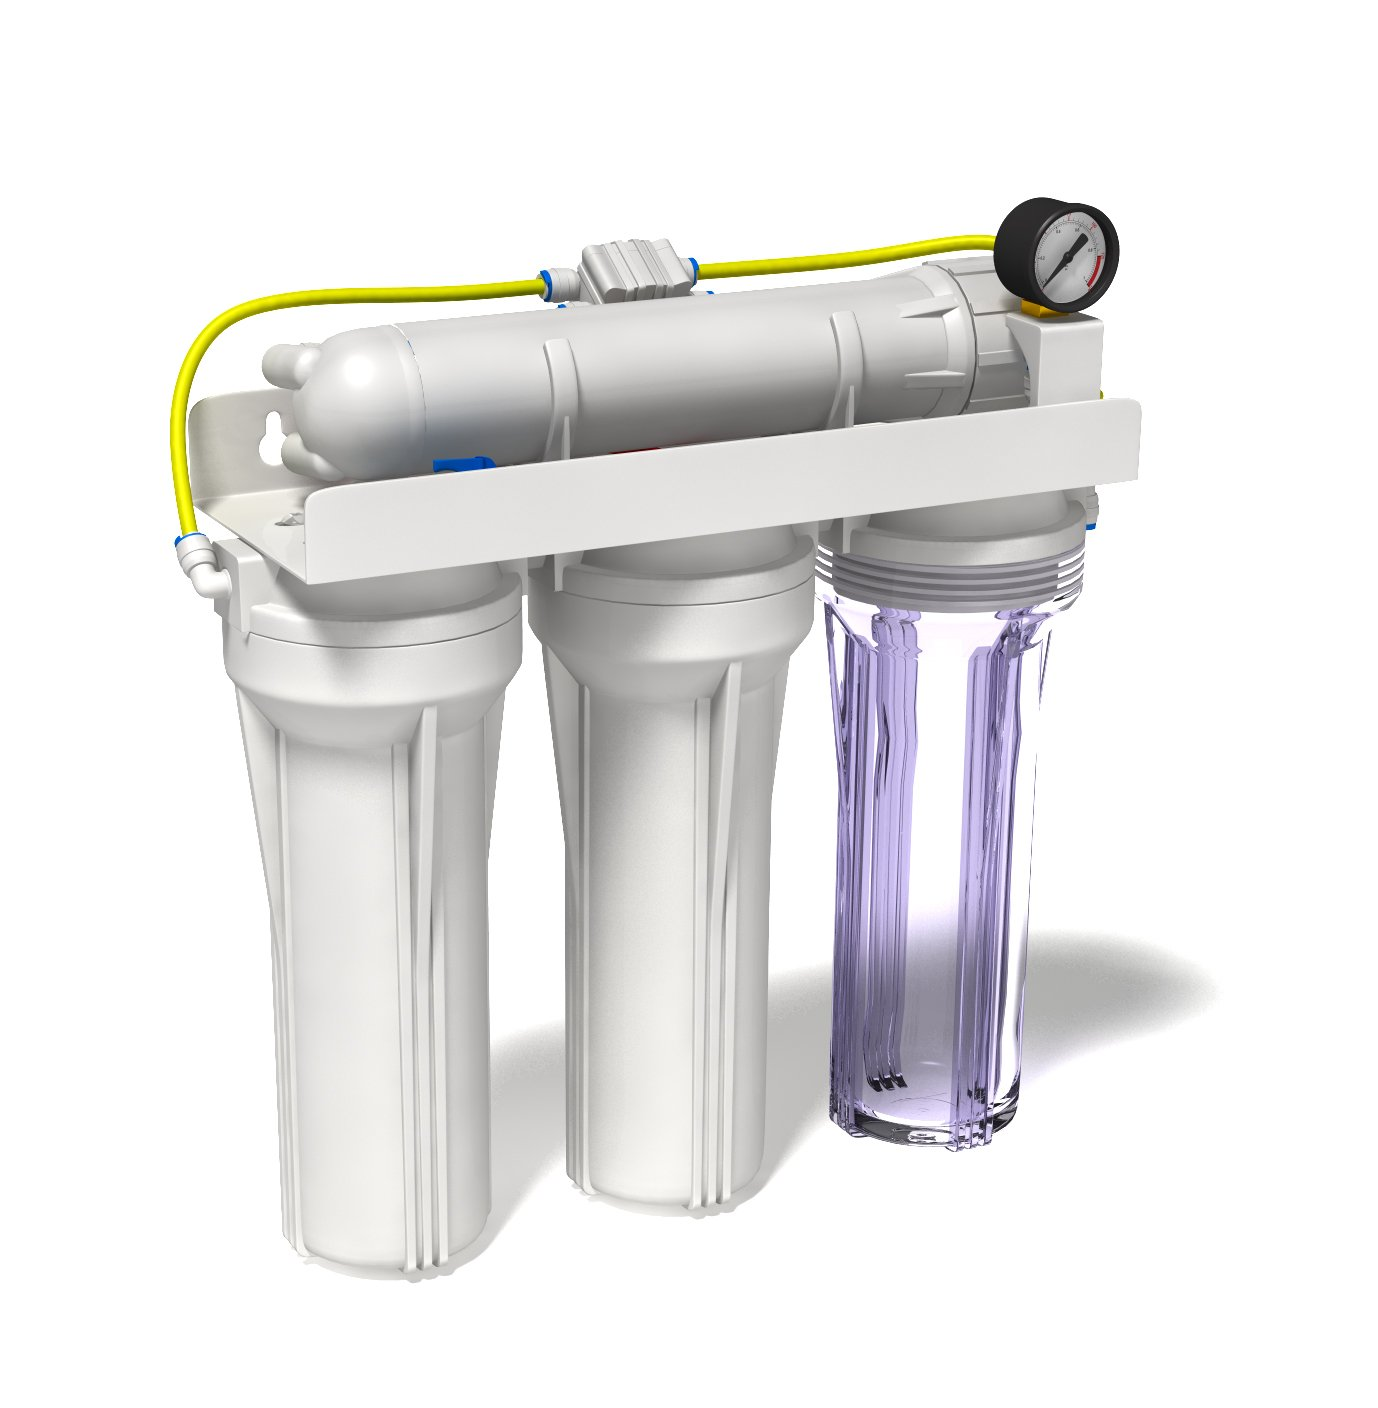 Aquatic Life 4-Stage 100 GPD Junior Reverse Osmosis Filter System